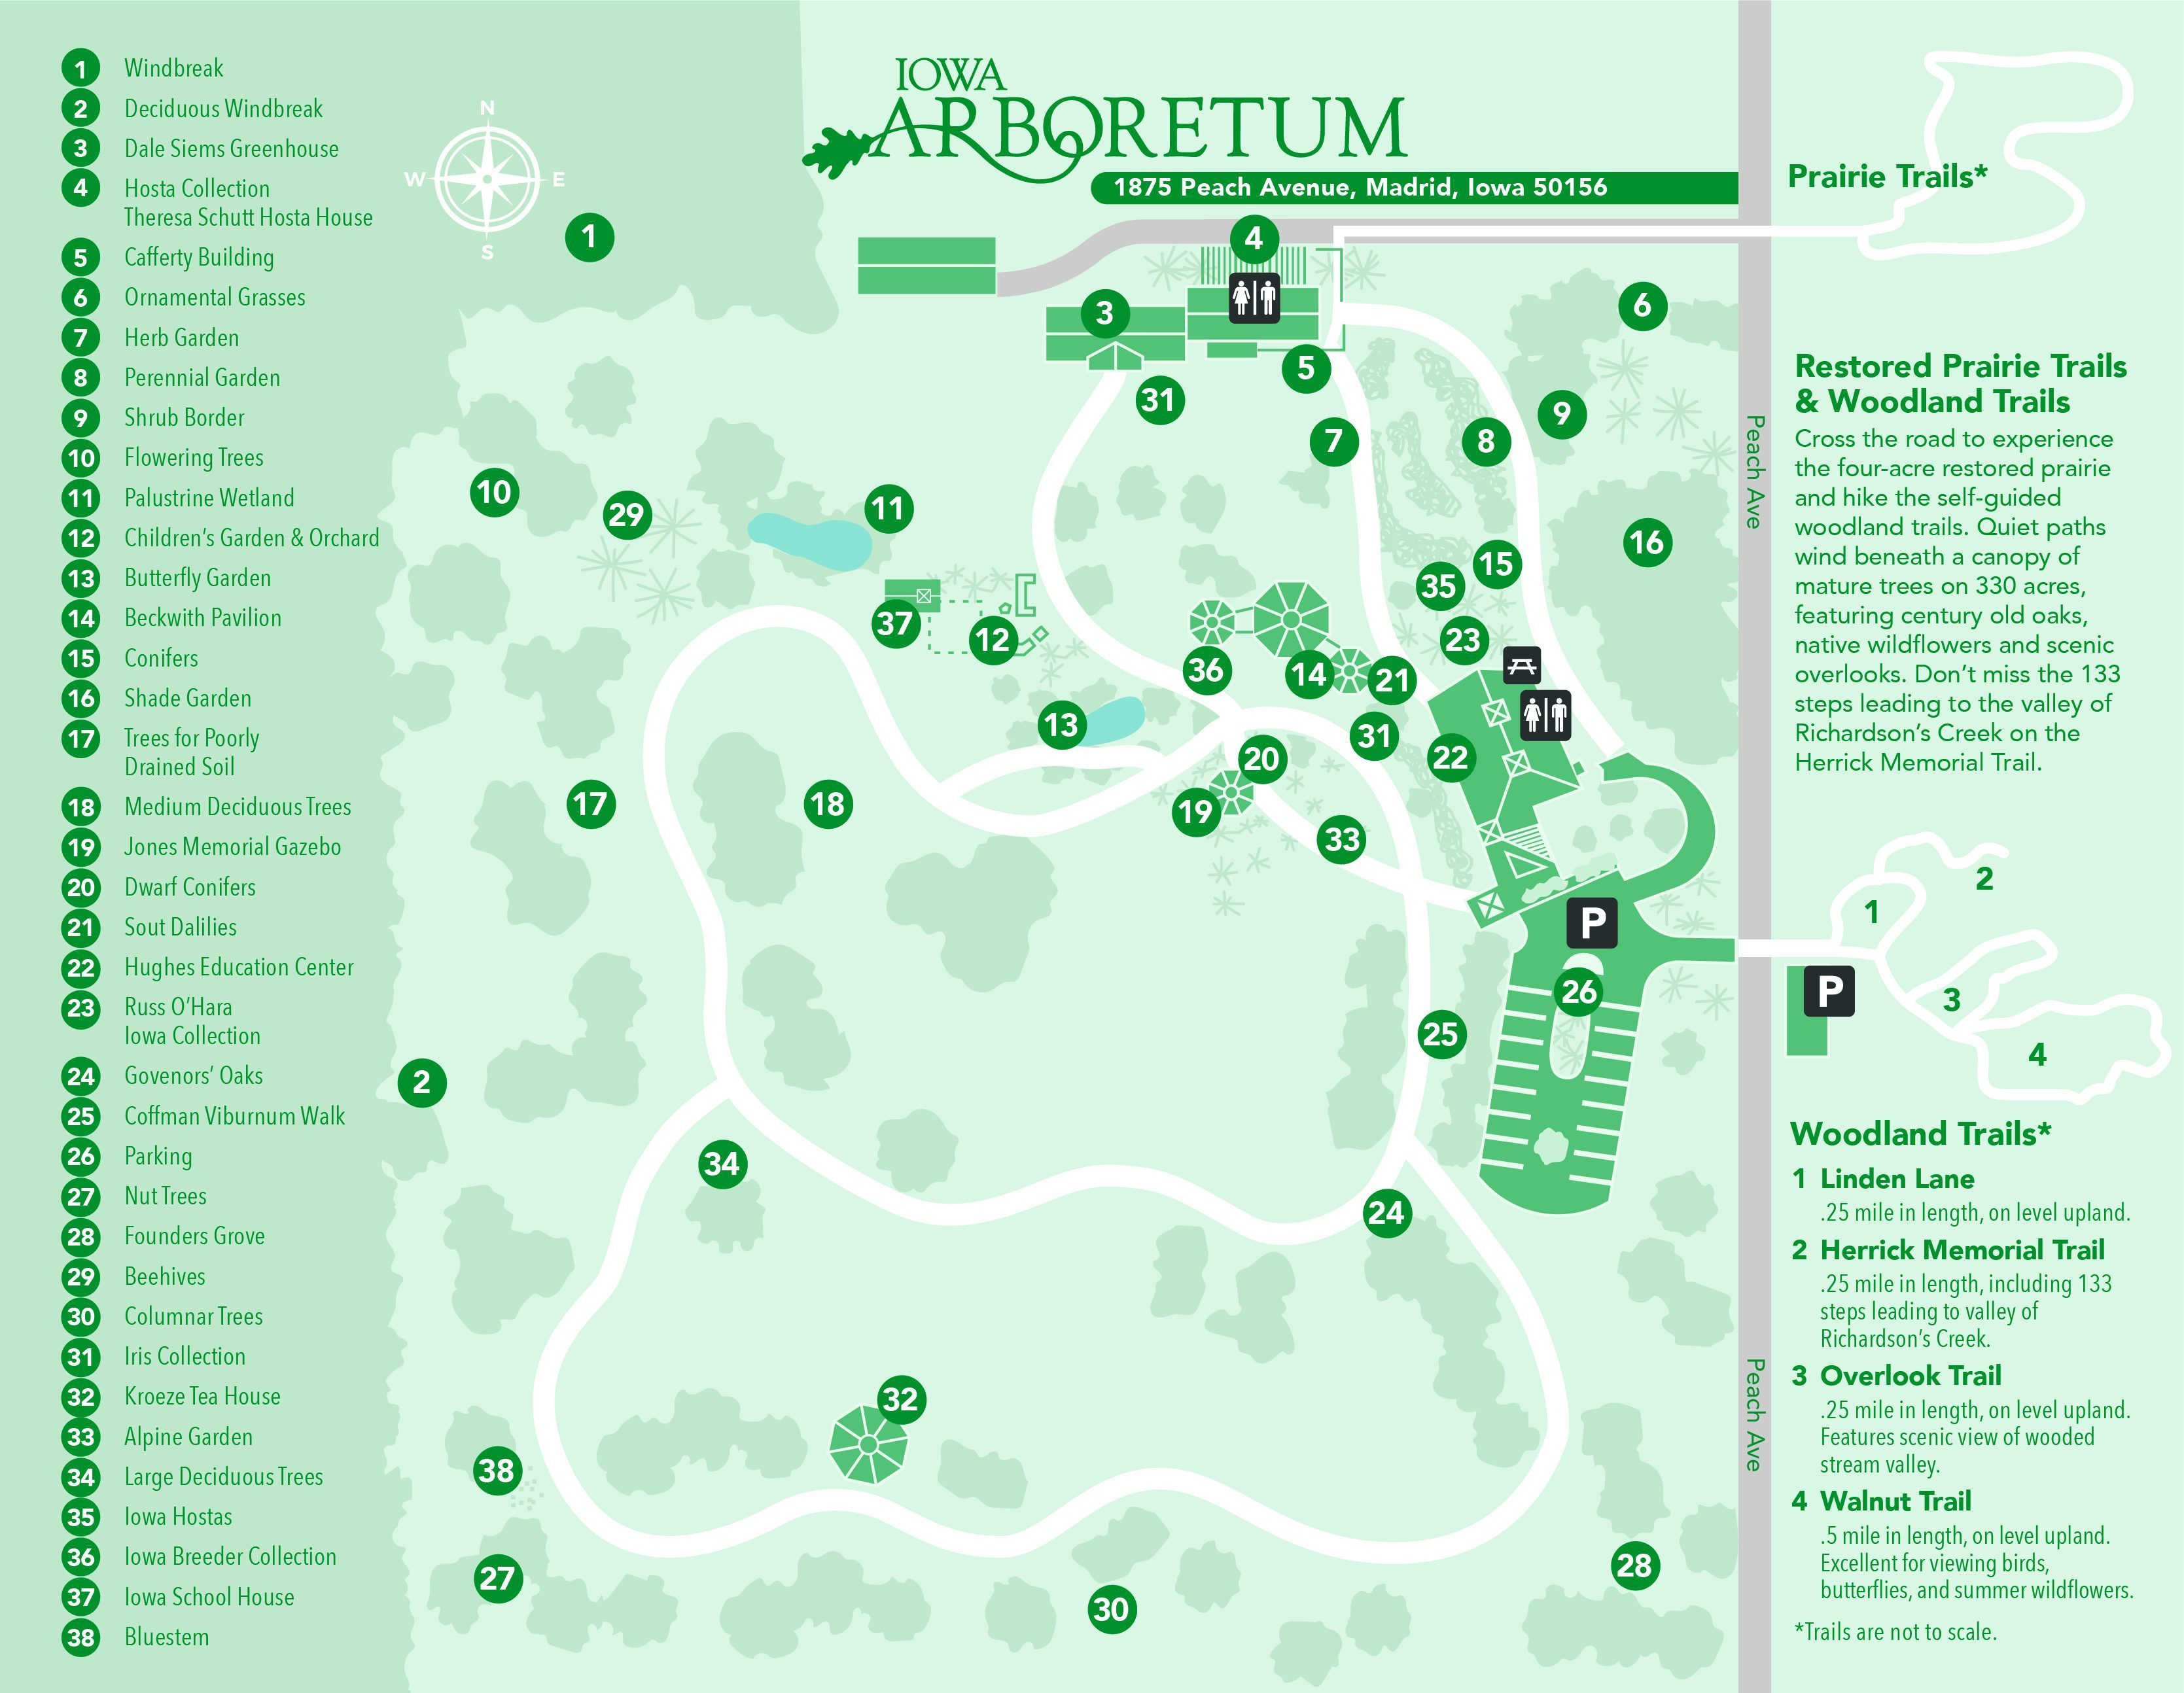 click on the links below to explore other areas of the arboretum